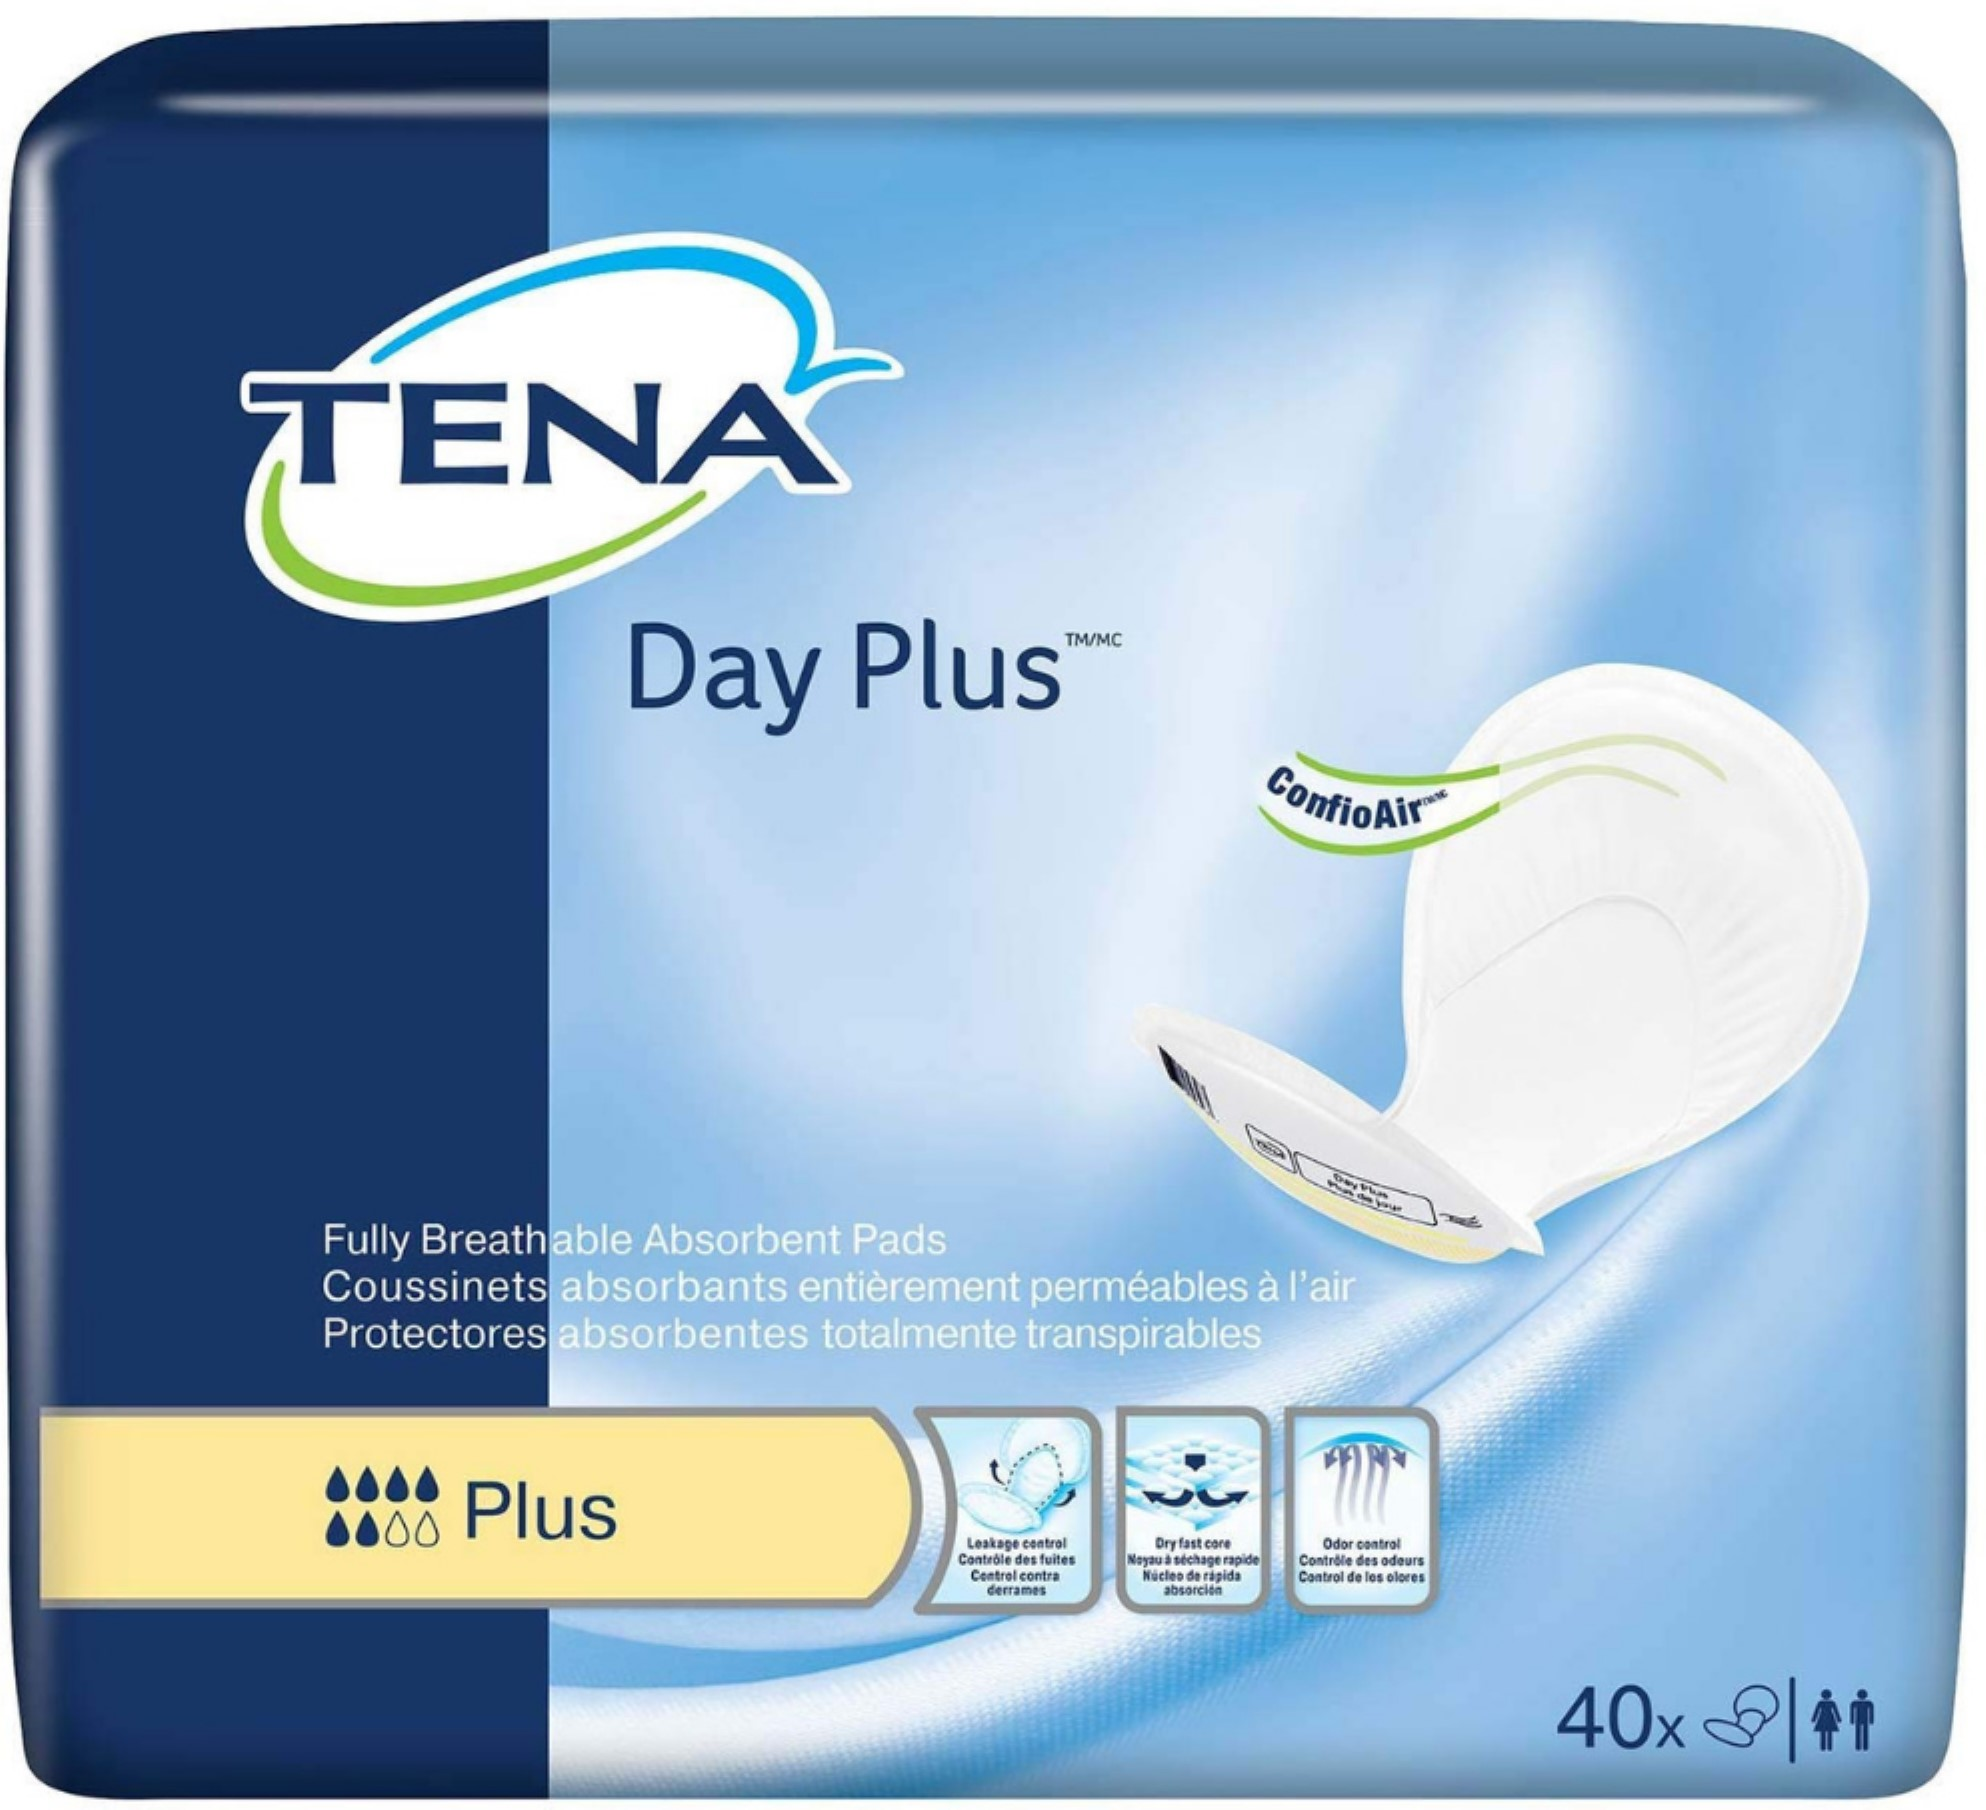 Tena Day Plus Absorbent Pads, 40 count